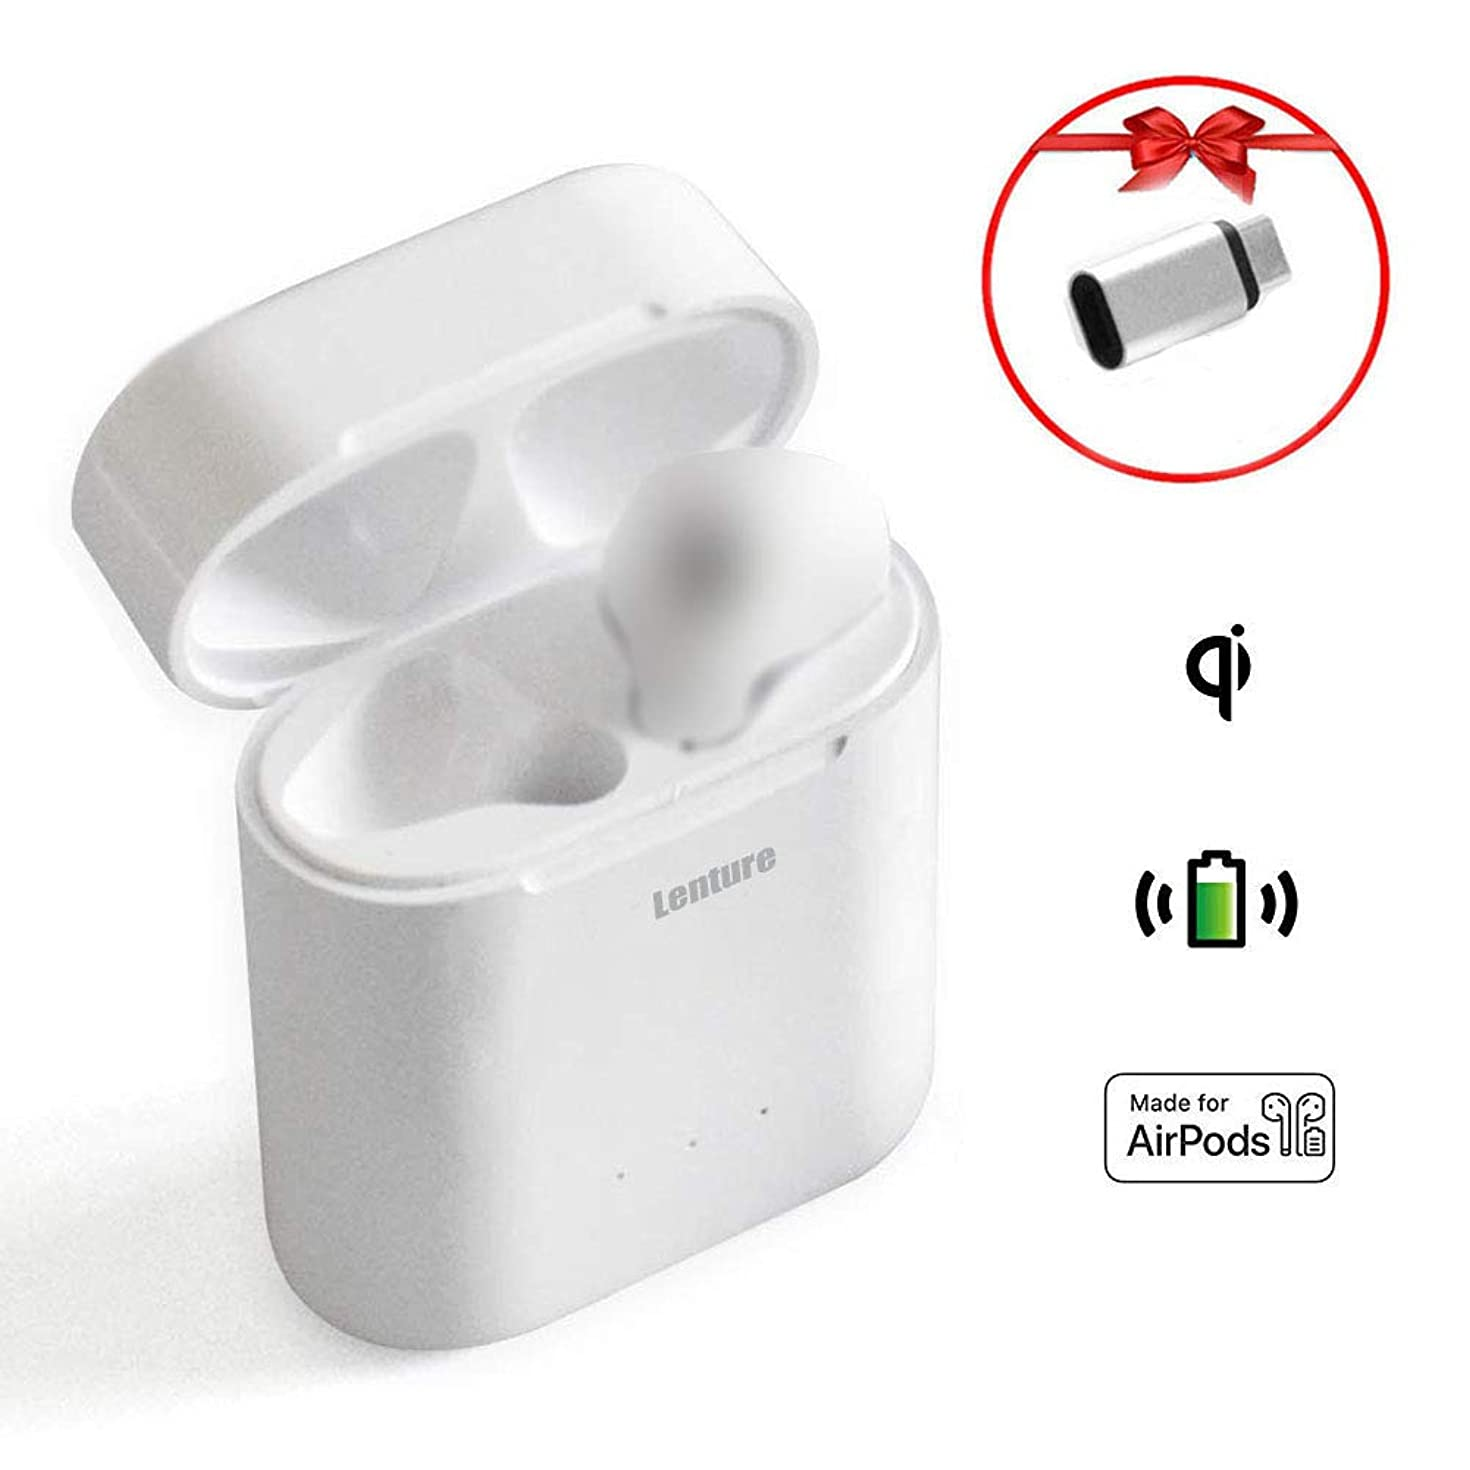 Wireless Charging Case Replacement for AirPods 1st/2nd, Lenture Fast Charger Case Compatible with Airpod, Built-in Power Batteries Support 5 Times Full Charge (No Pairing Button, No Airpods Included)